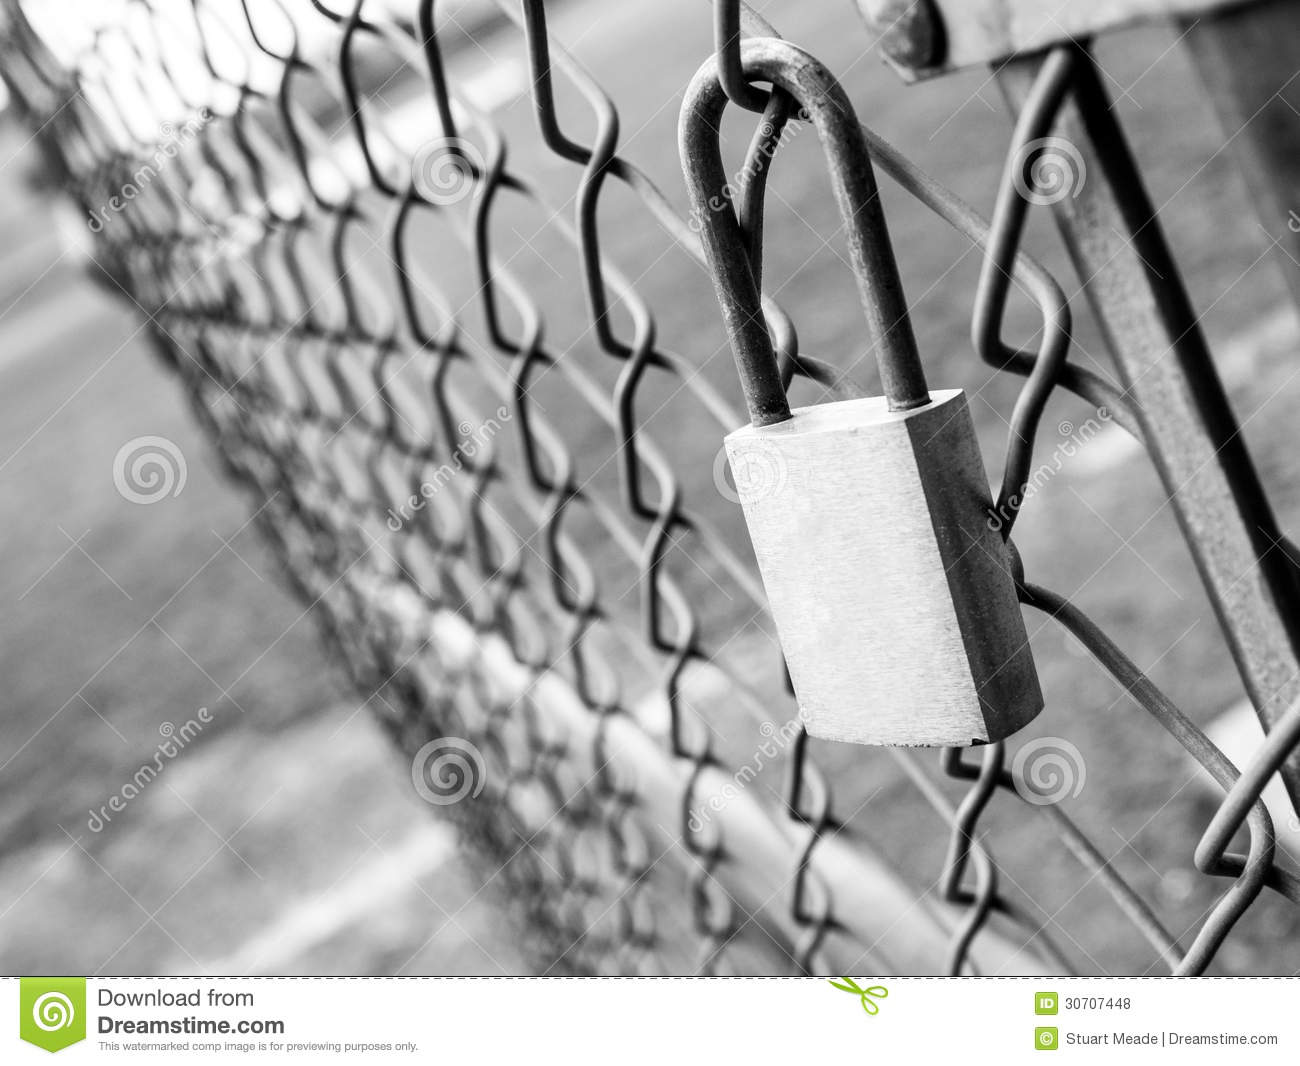 Security breach royalty free stock photos image 30707448 - How to open chain lock ...